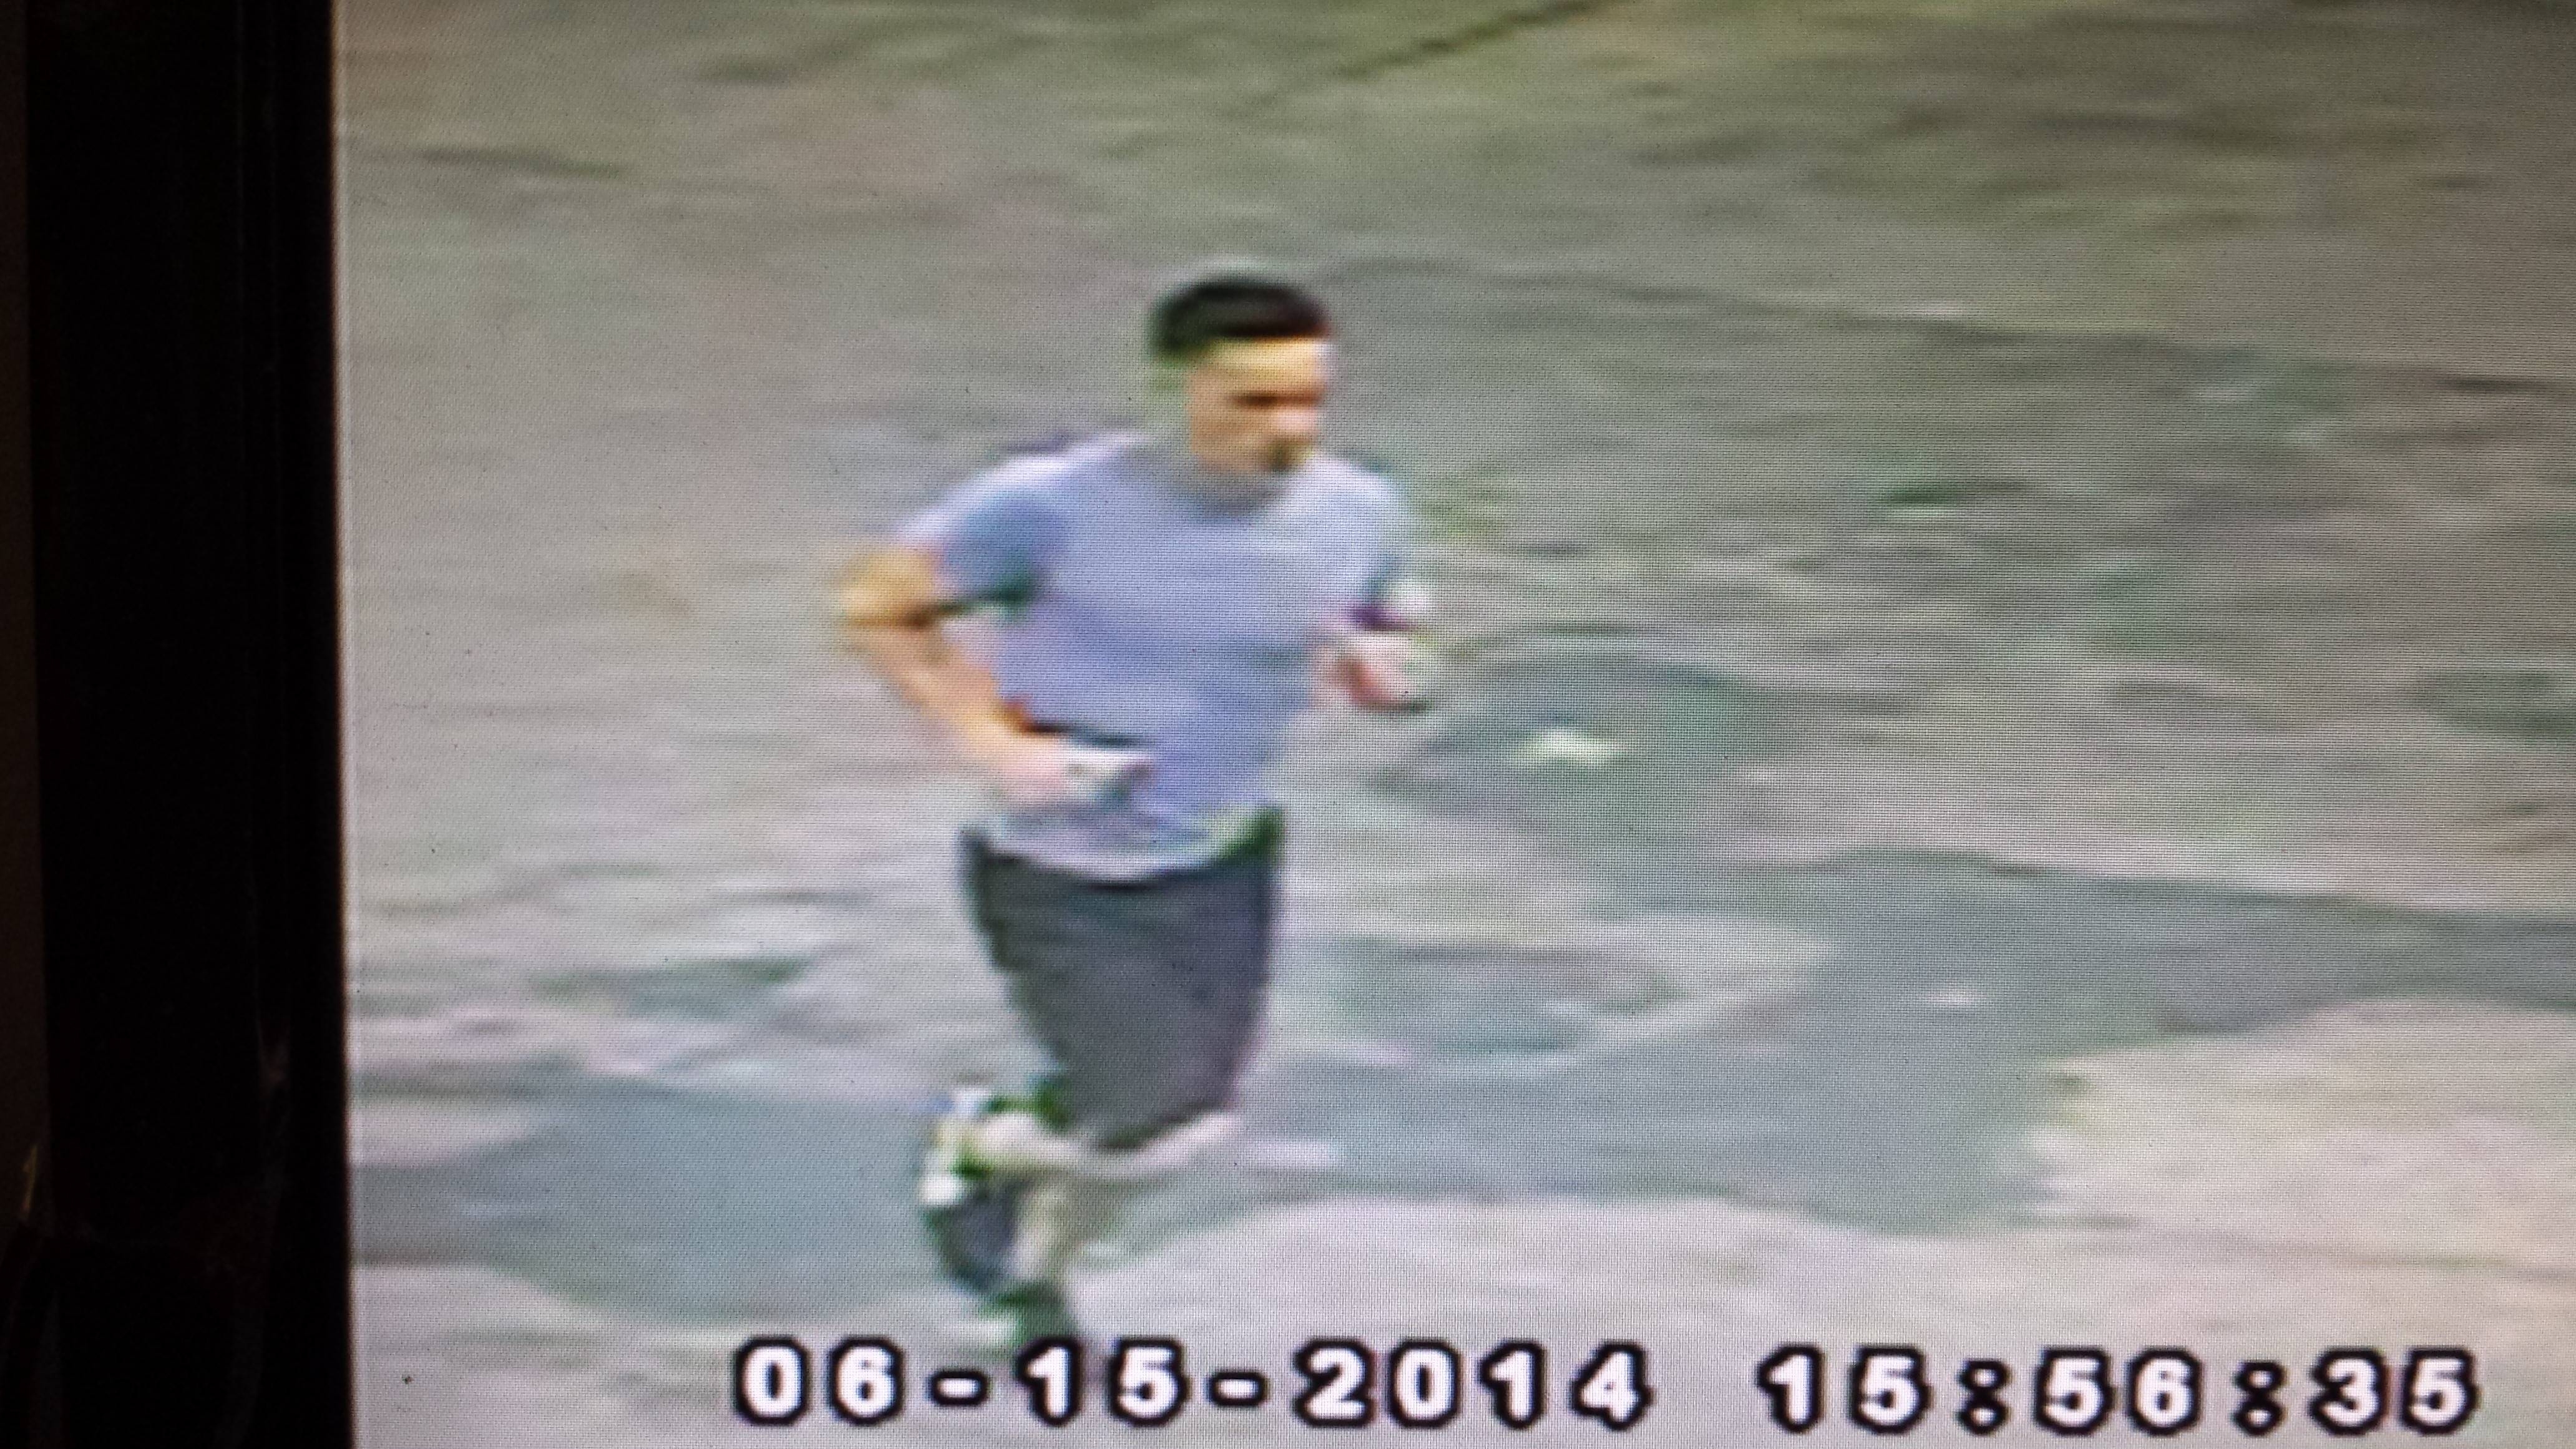 Police believe this man may have attacked a woman Sunday near Libertyville.